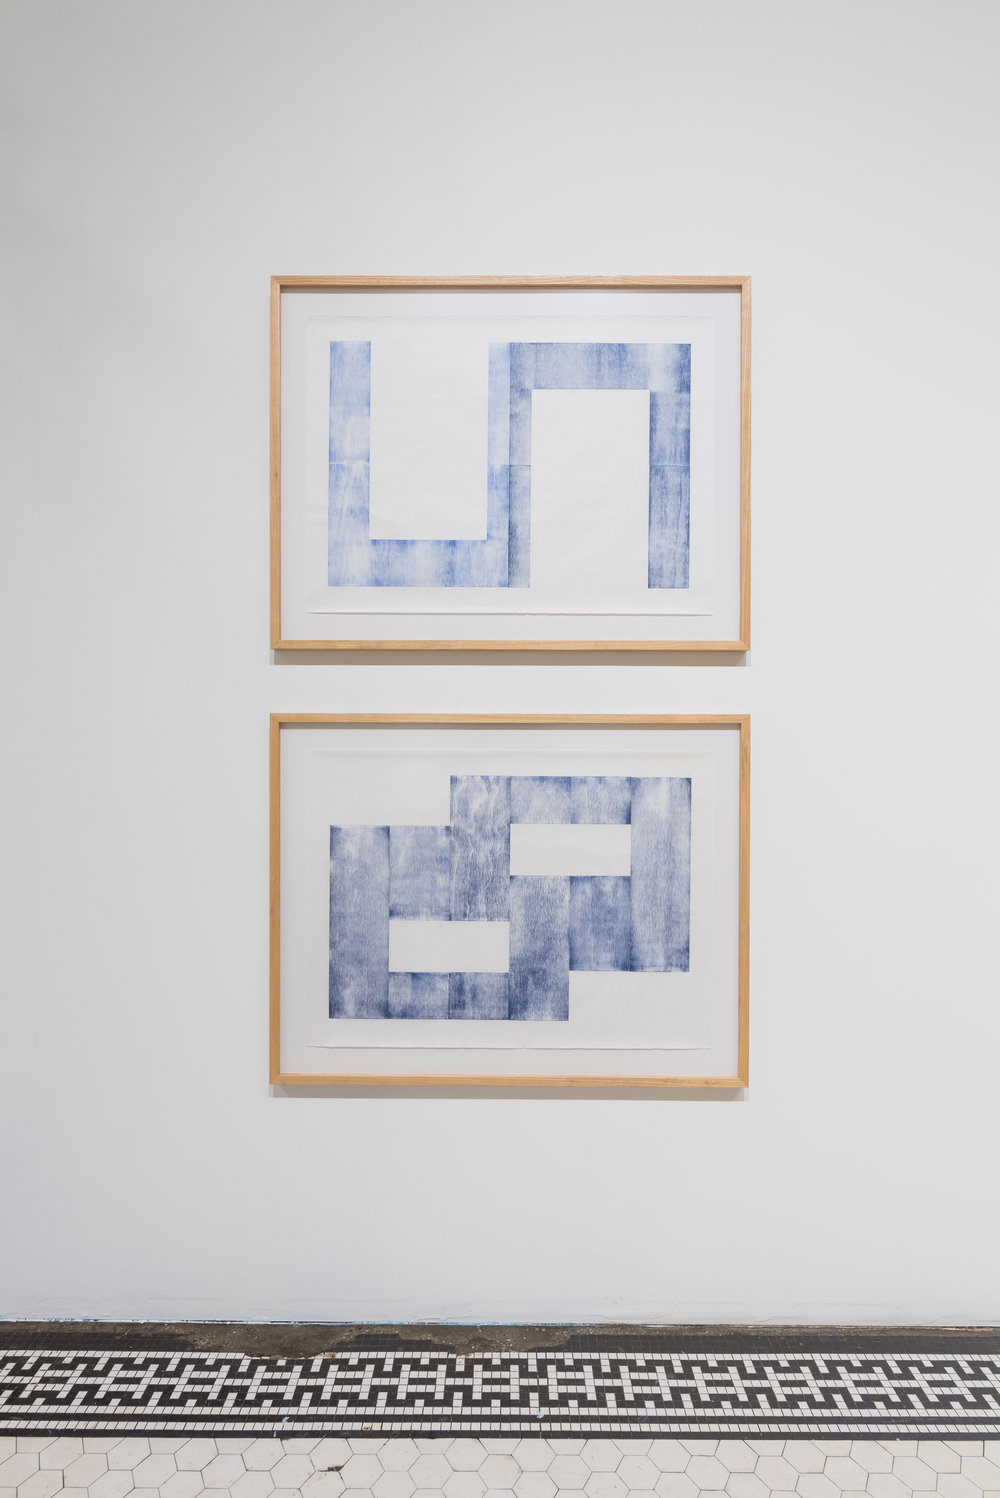 Rachel DuVall's preparatory process can last for more than a month and involves measurements, calculations, and the creation of a blueprint drawing for each work. Her recent work includes woodblock prints that are situated between the concise planning of her drawings and the looseness of her finished weavings.